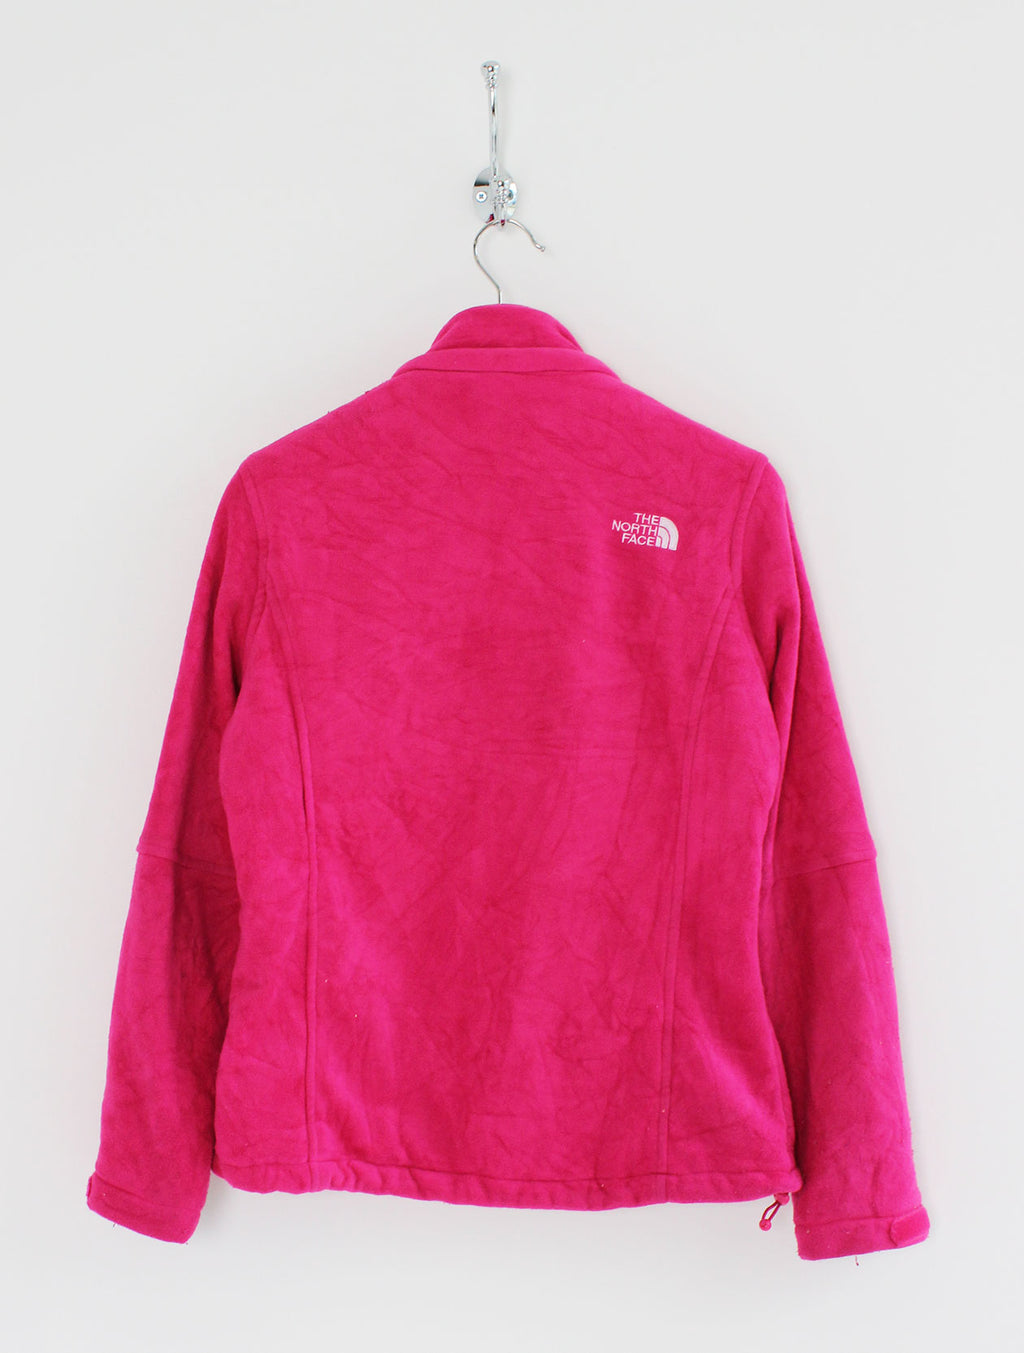 Women's The North Face Fleece Jacket (S)